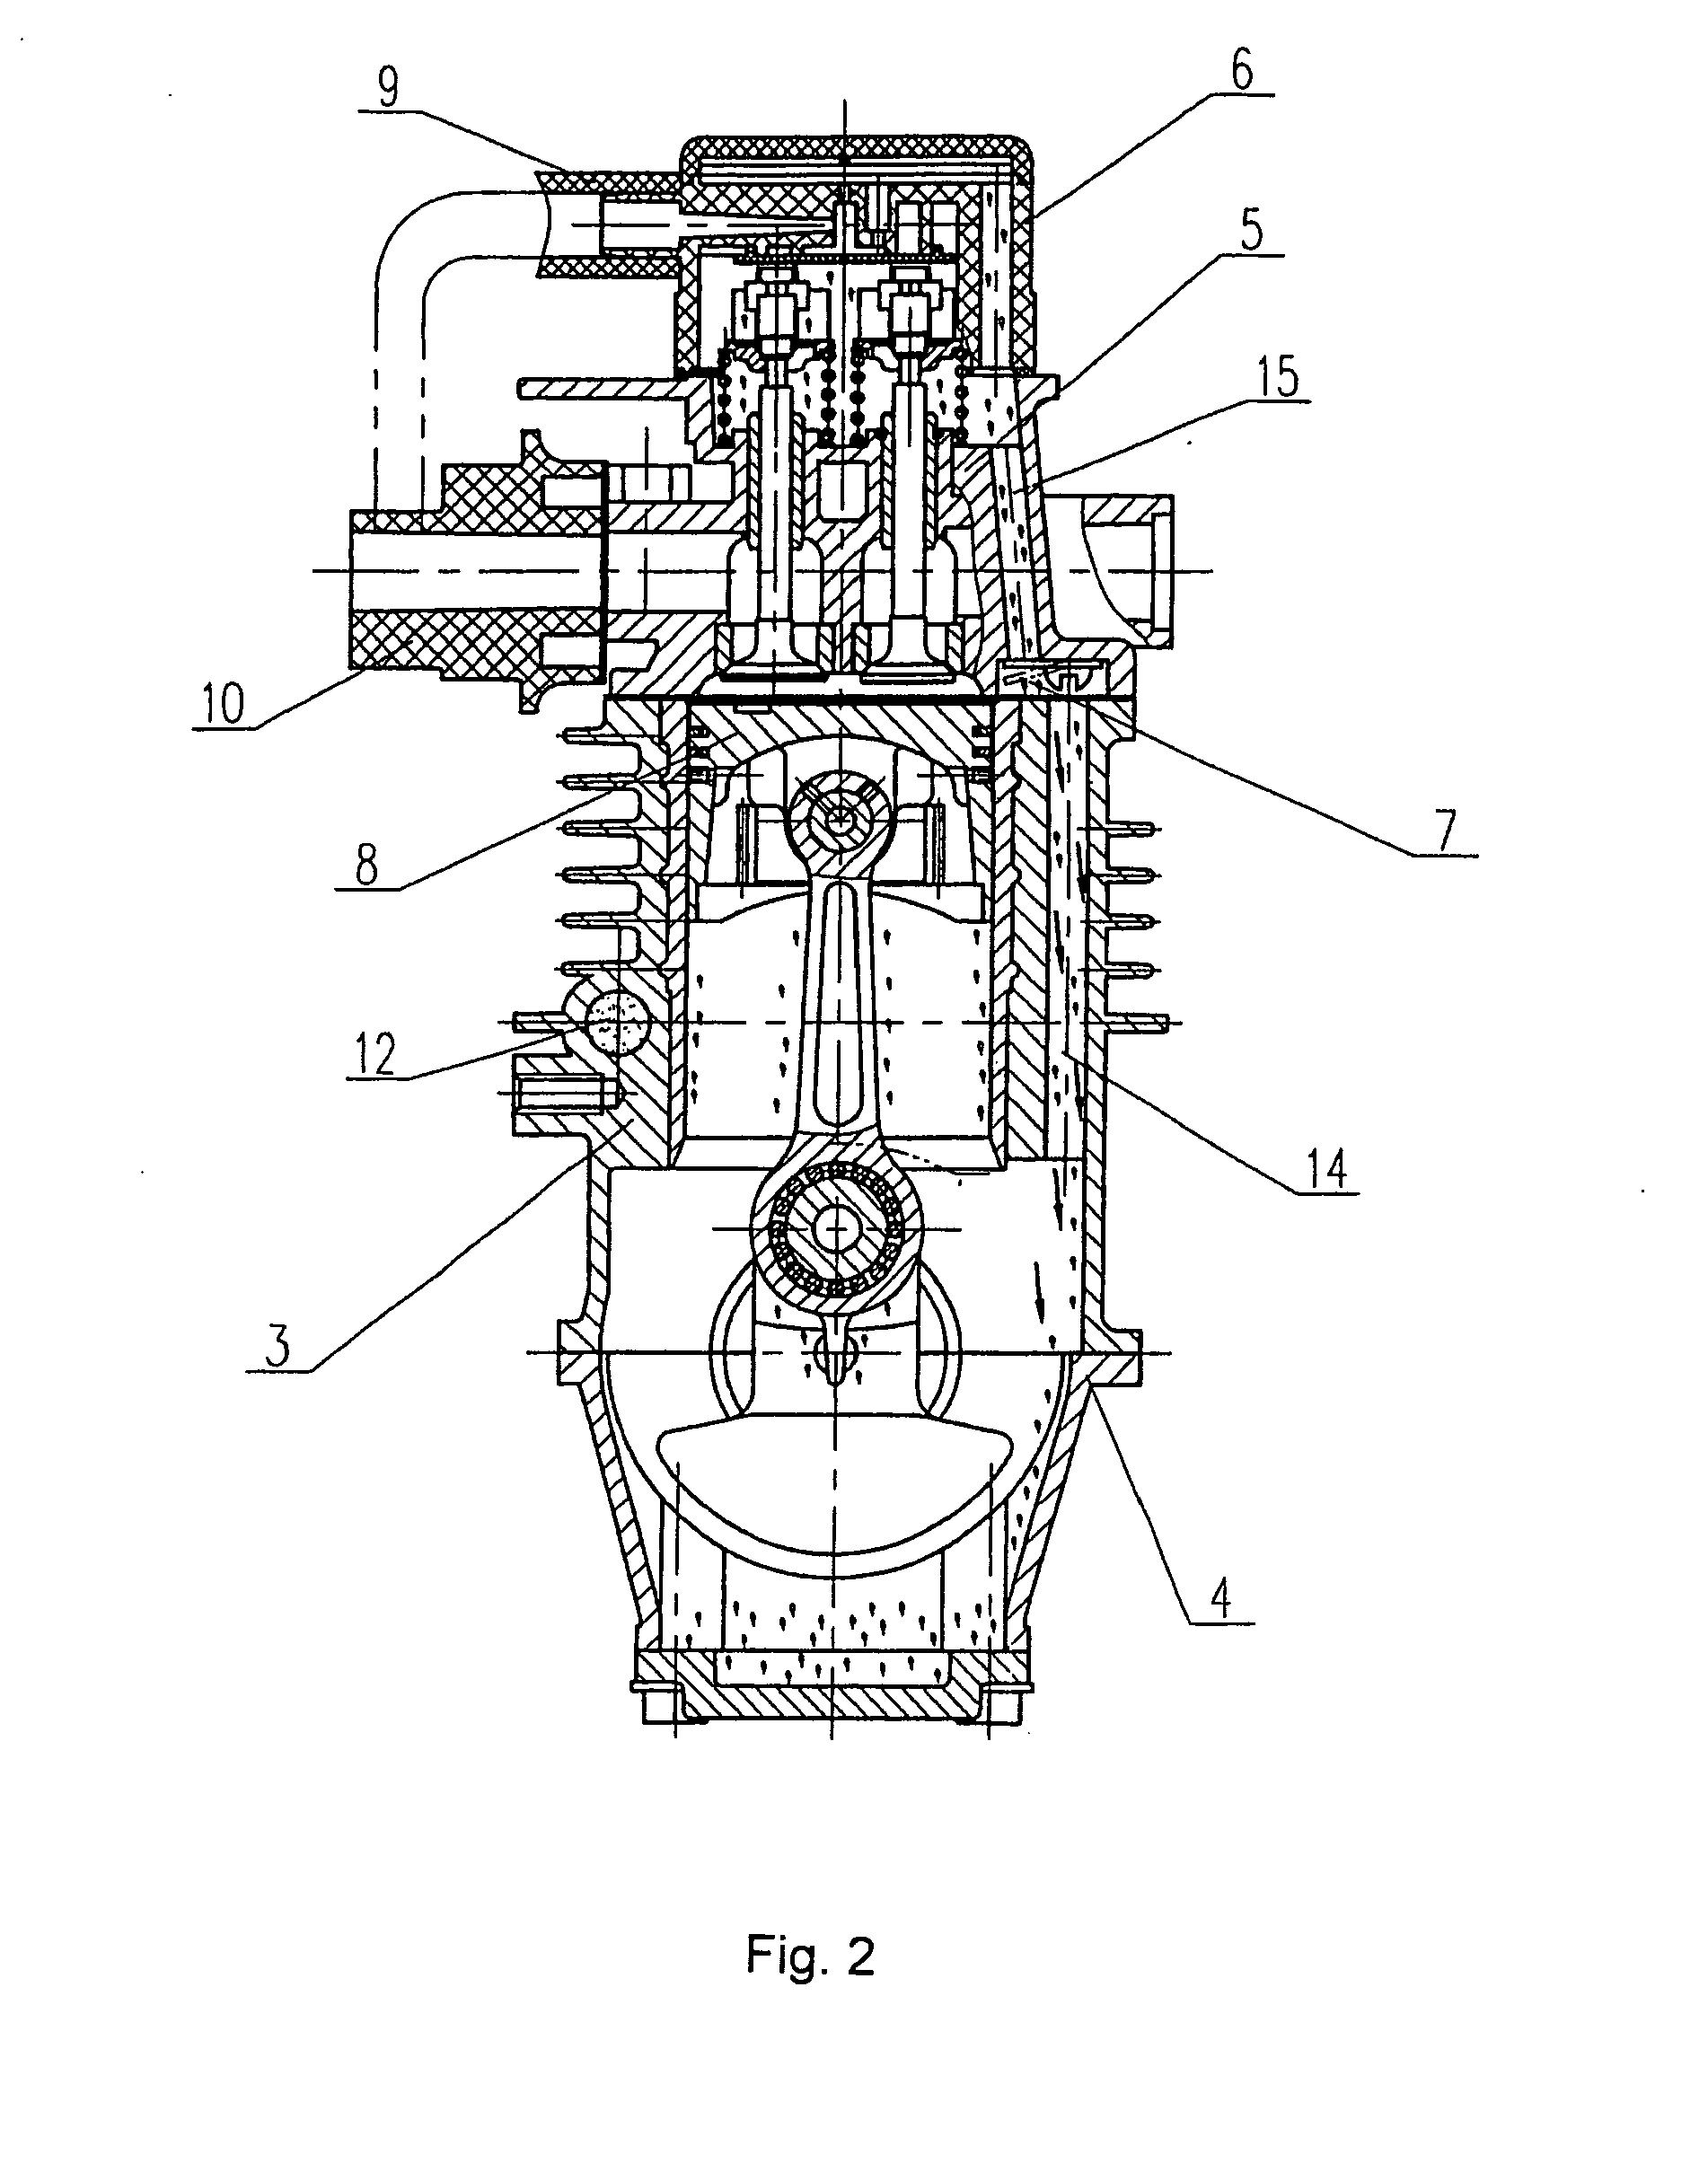 patent ep1666703a1 - a small four-stroke gasoline engine with oil mist lubrication